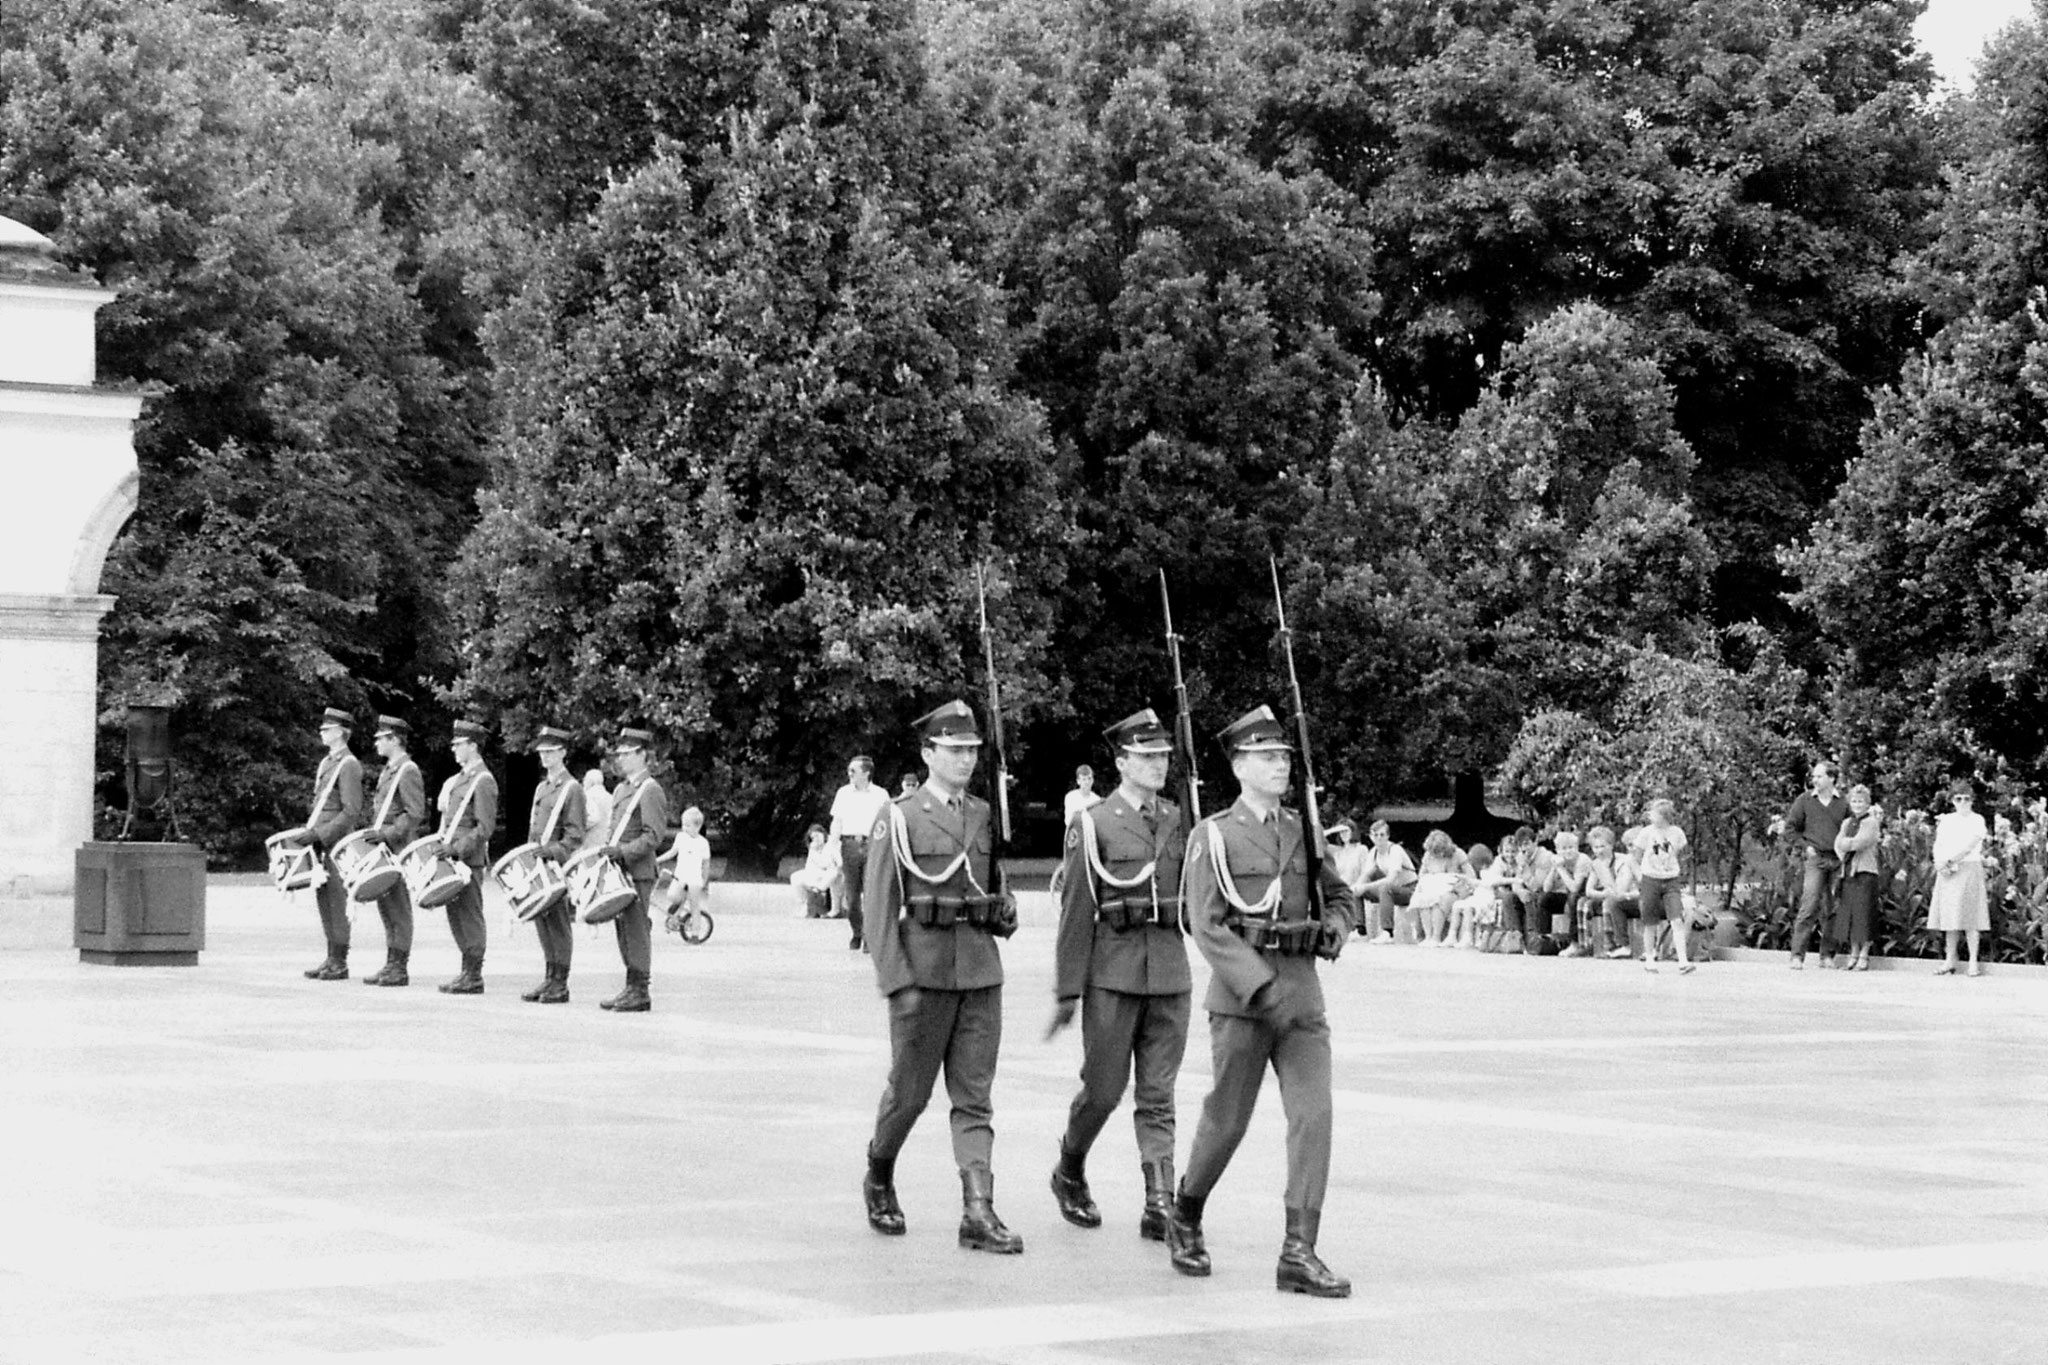 22/8/1988: 16: Tomb of the Unknown Soldier